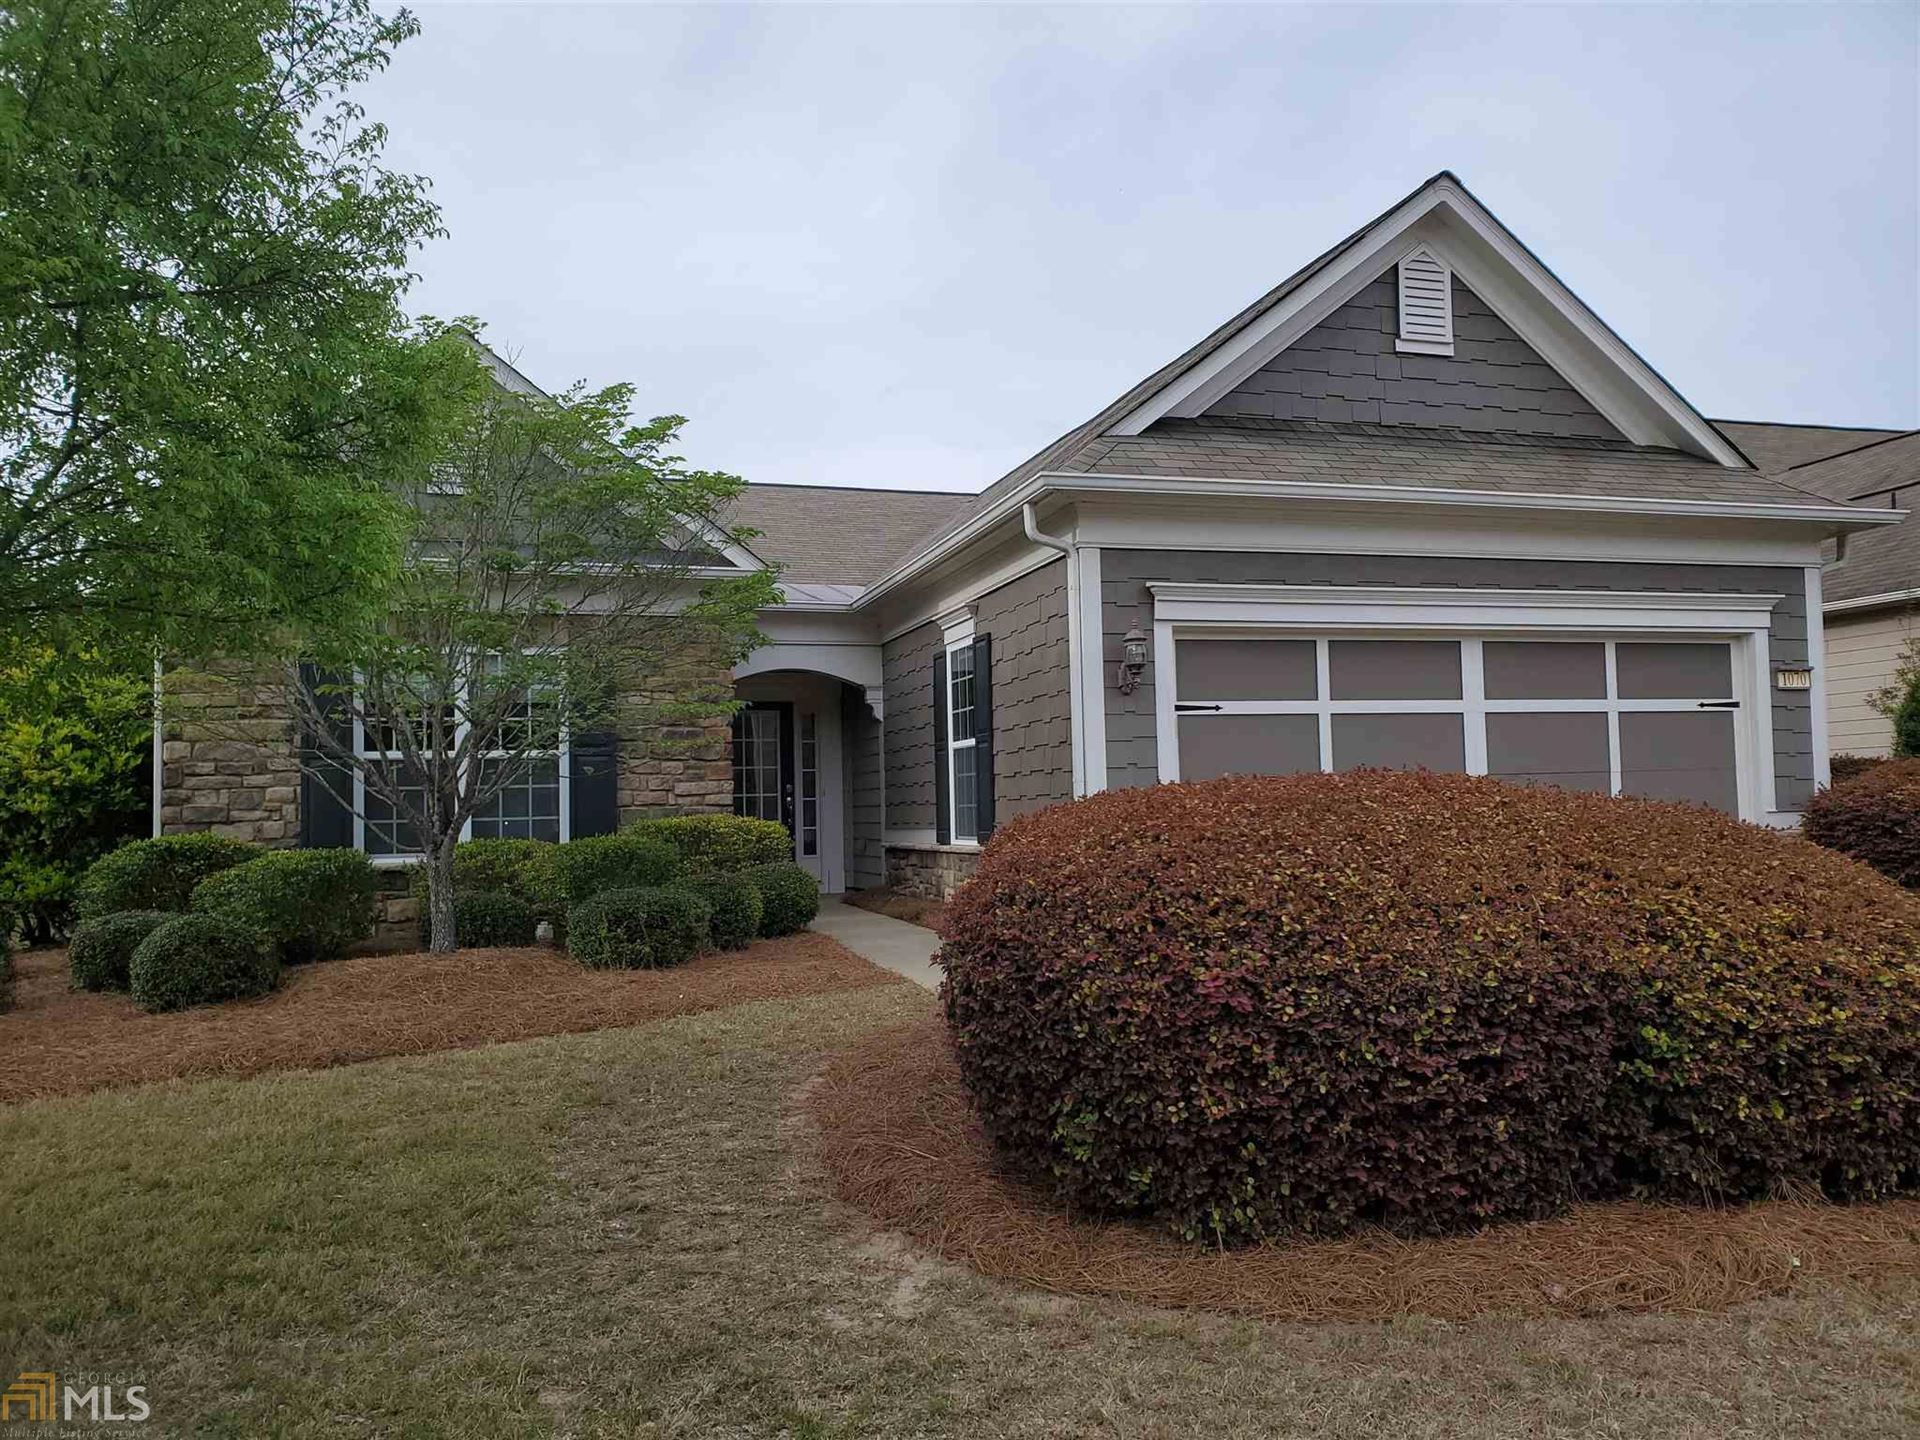 1070 Spring Station Rd, Greensboro, GA 30642 - MLS#: 8962682